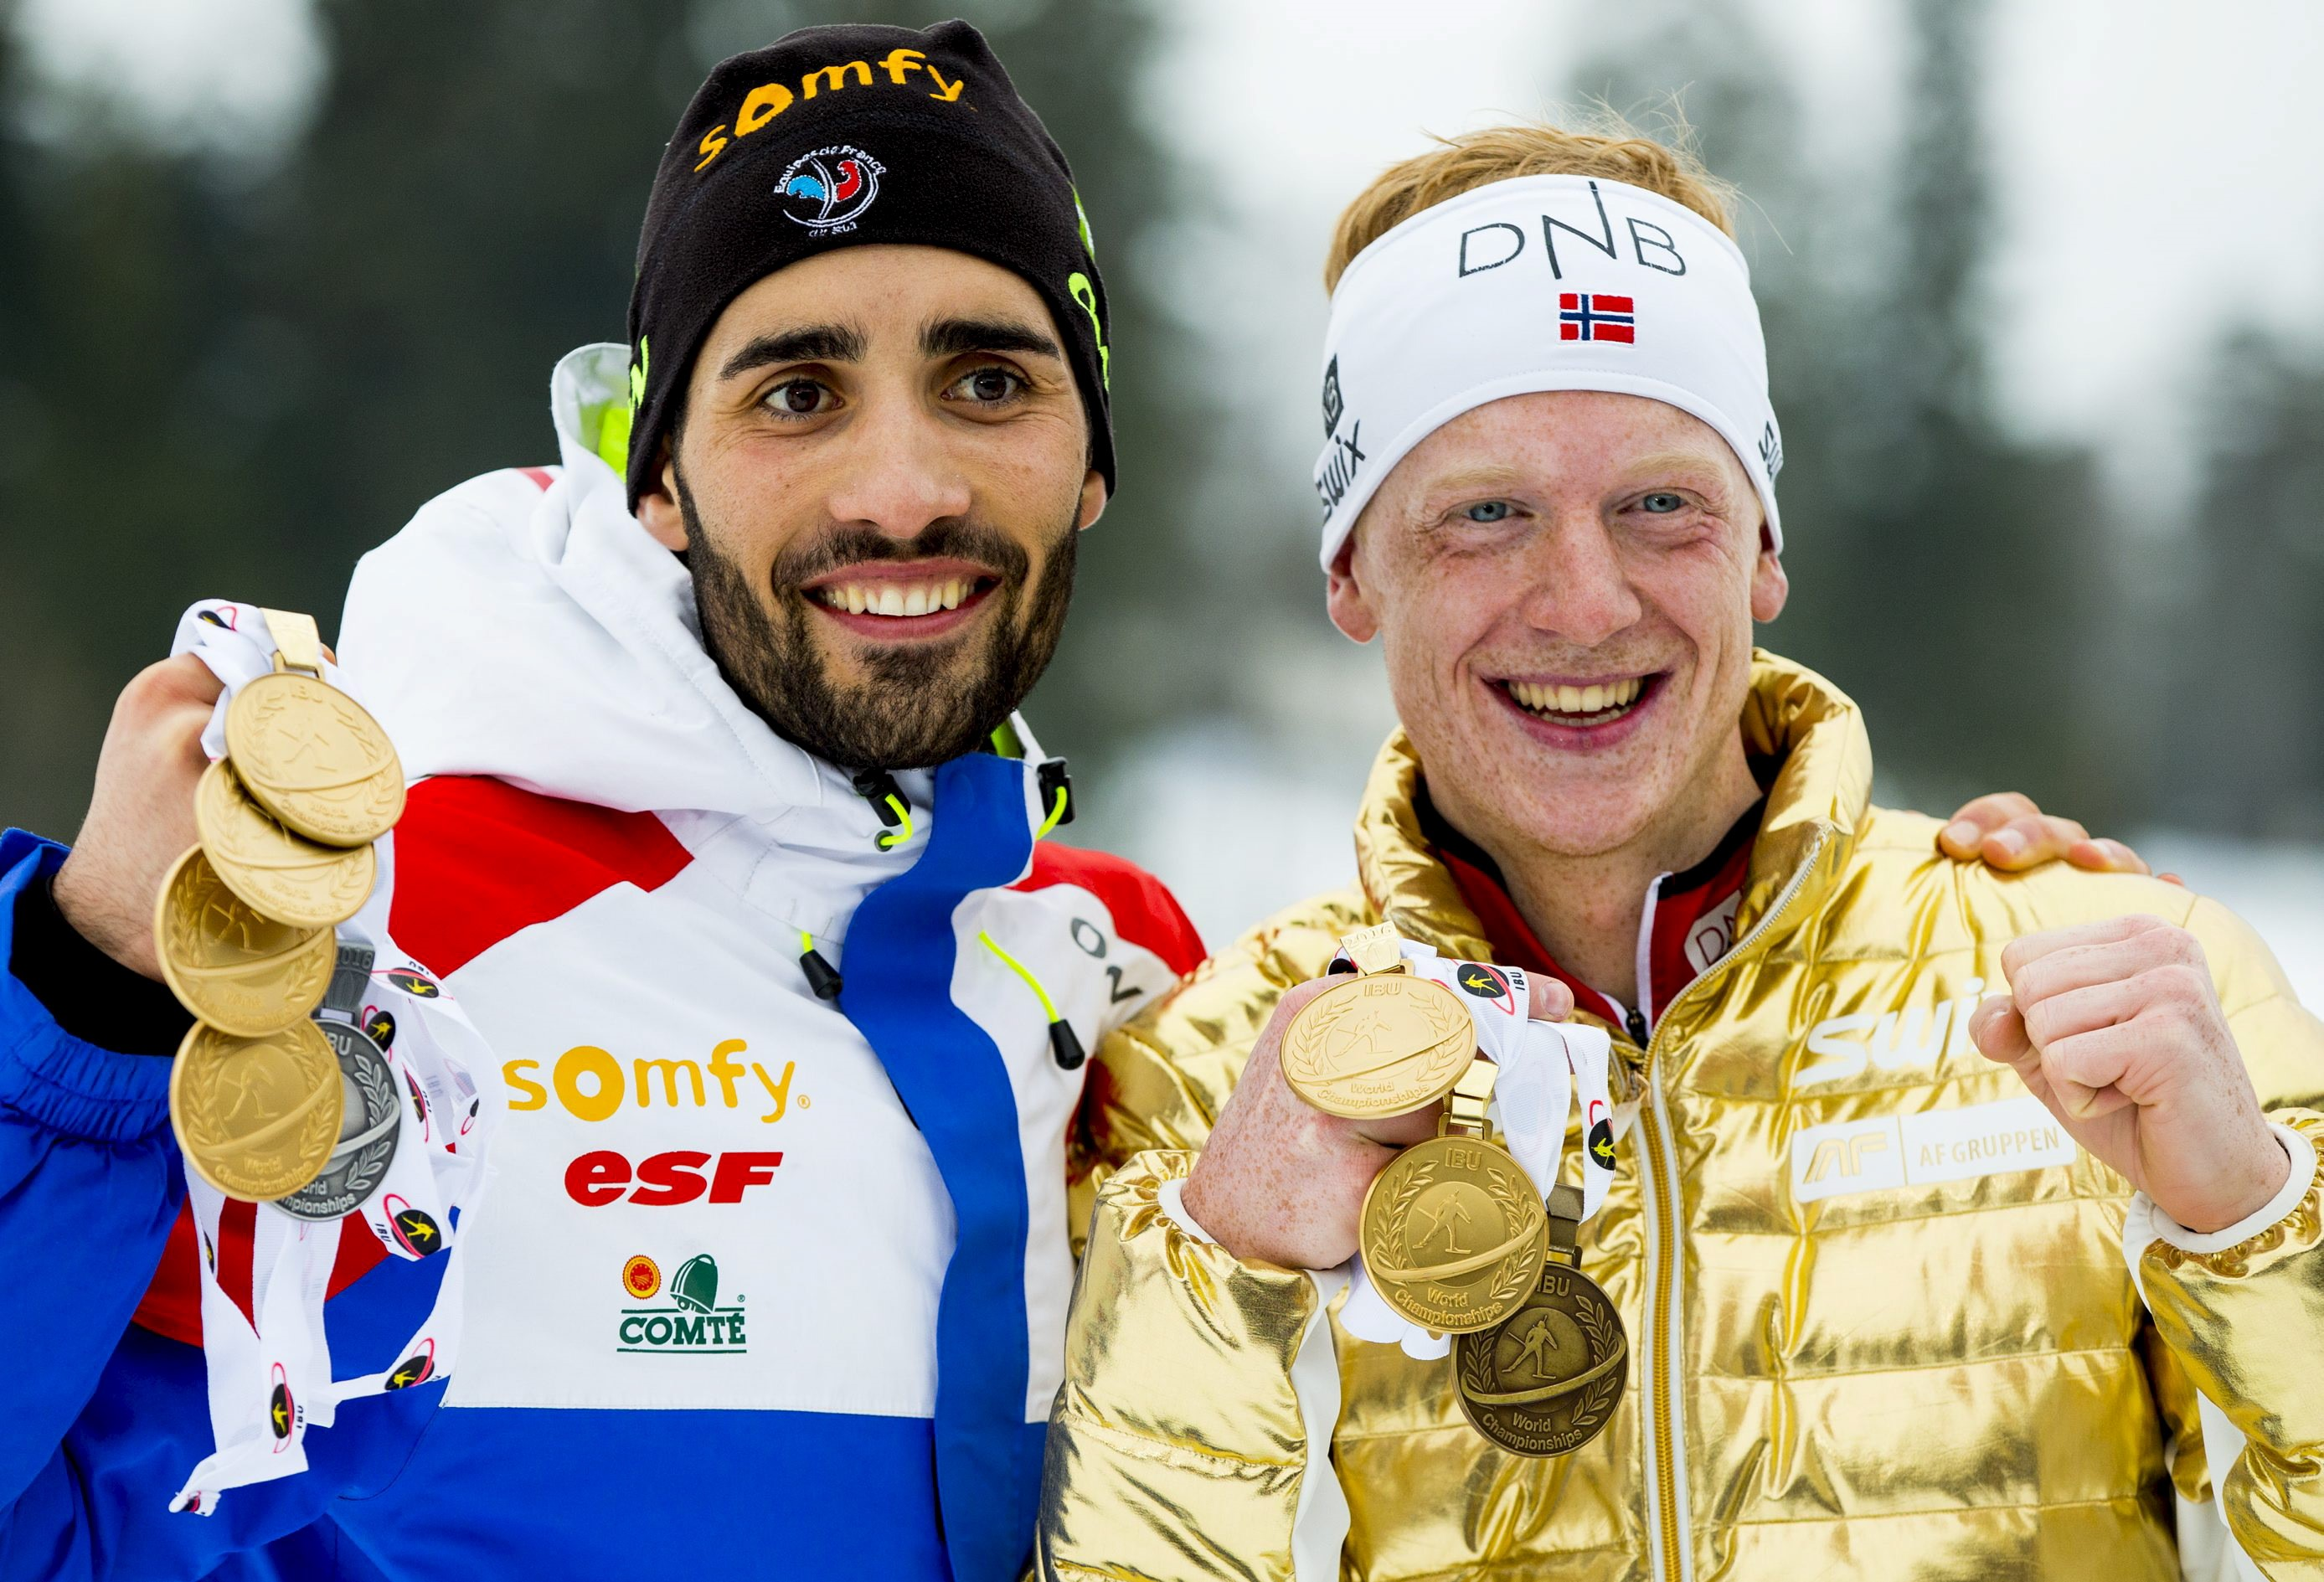 Martin Fourcade (L) of France and Johannes Thingnes Boe of Norway display their medals after the IBU World Championships Biathlon